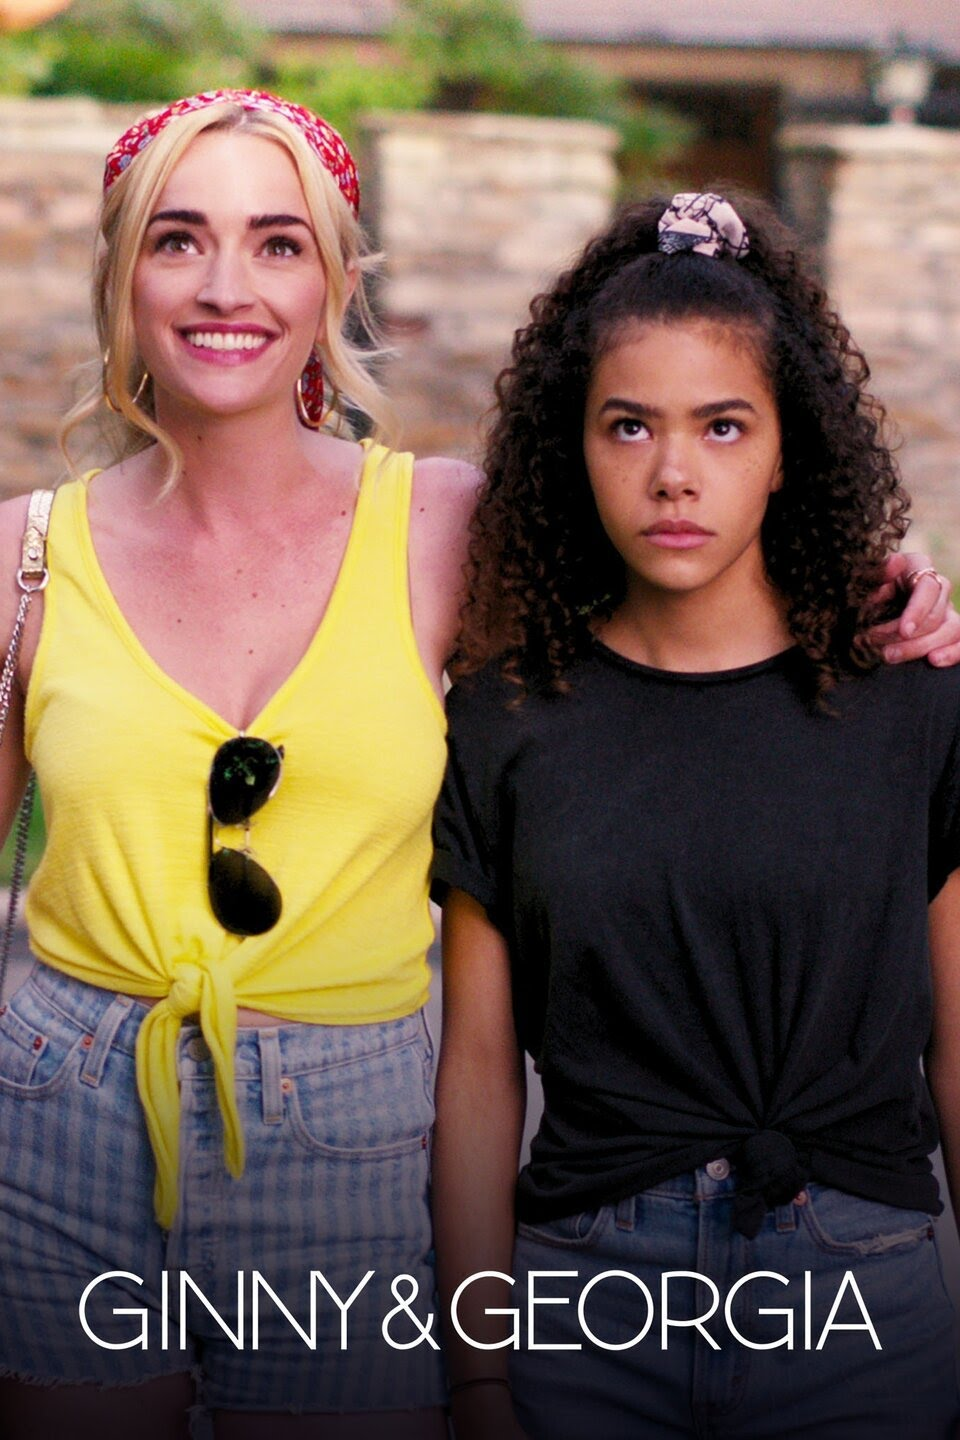 ginny-and-georgia-show-on-netflix-to-watch-latest-entertainment-news-online